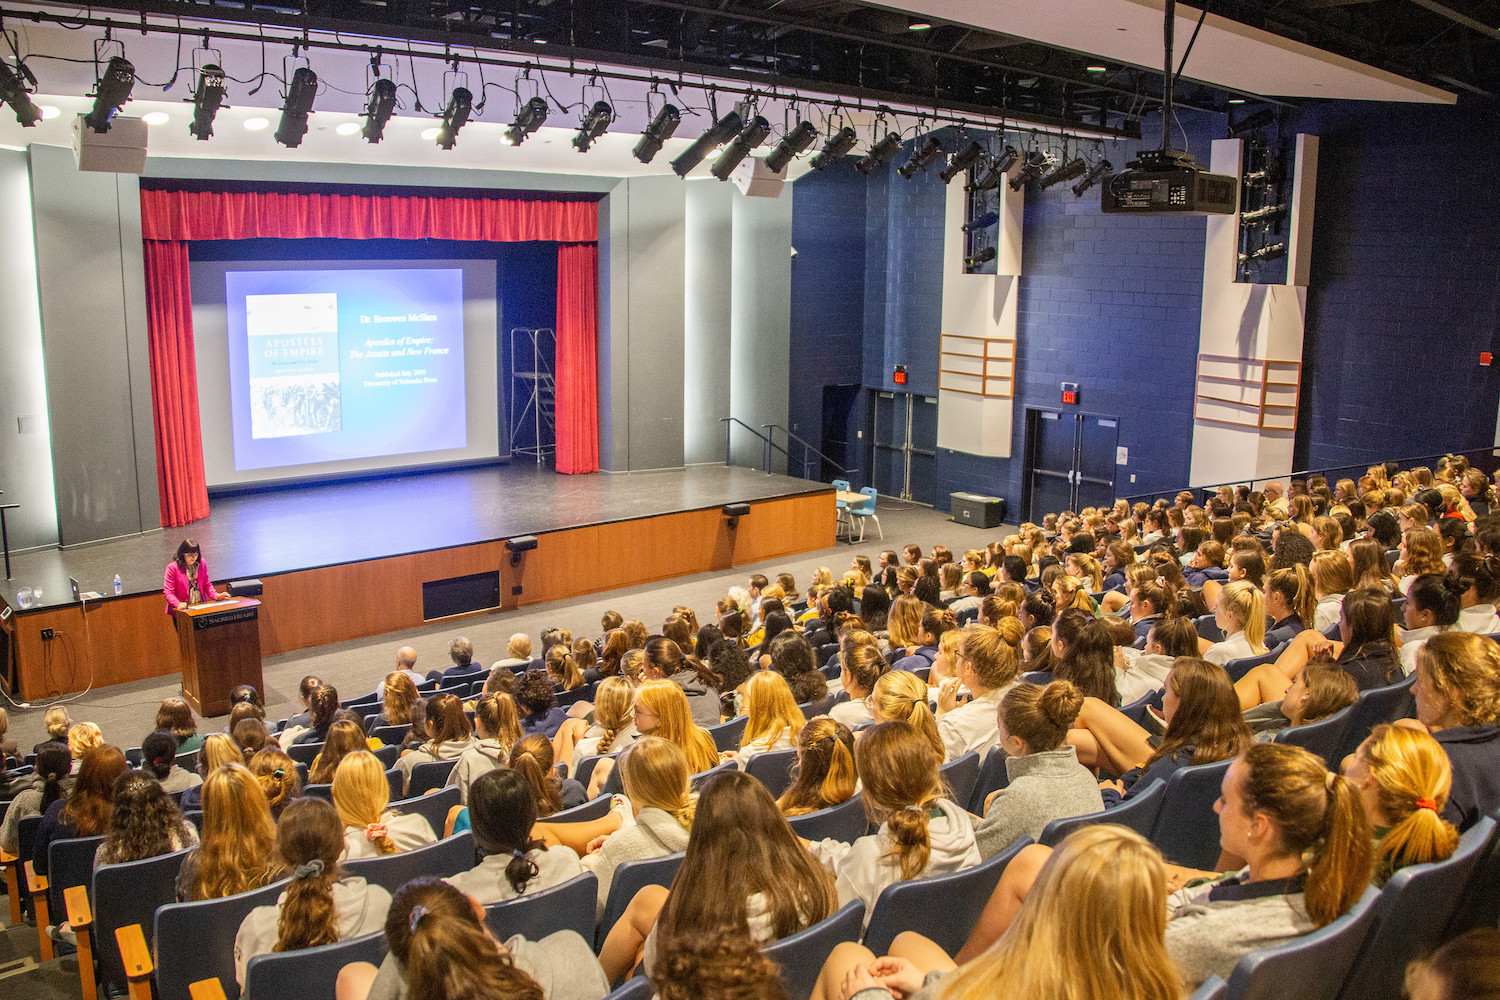 Dr. Bronwen McShea shares her new book Apostles of Empire: The Jesuits and New France  with Upper School students. Courtesy of Ms. Rachel Zurheide